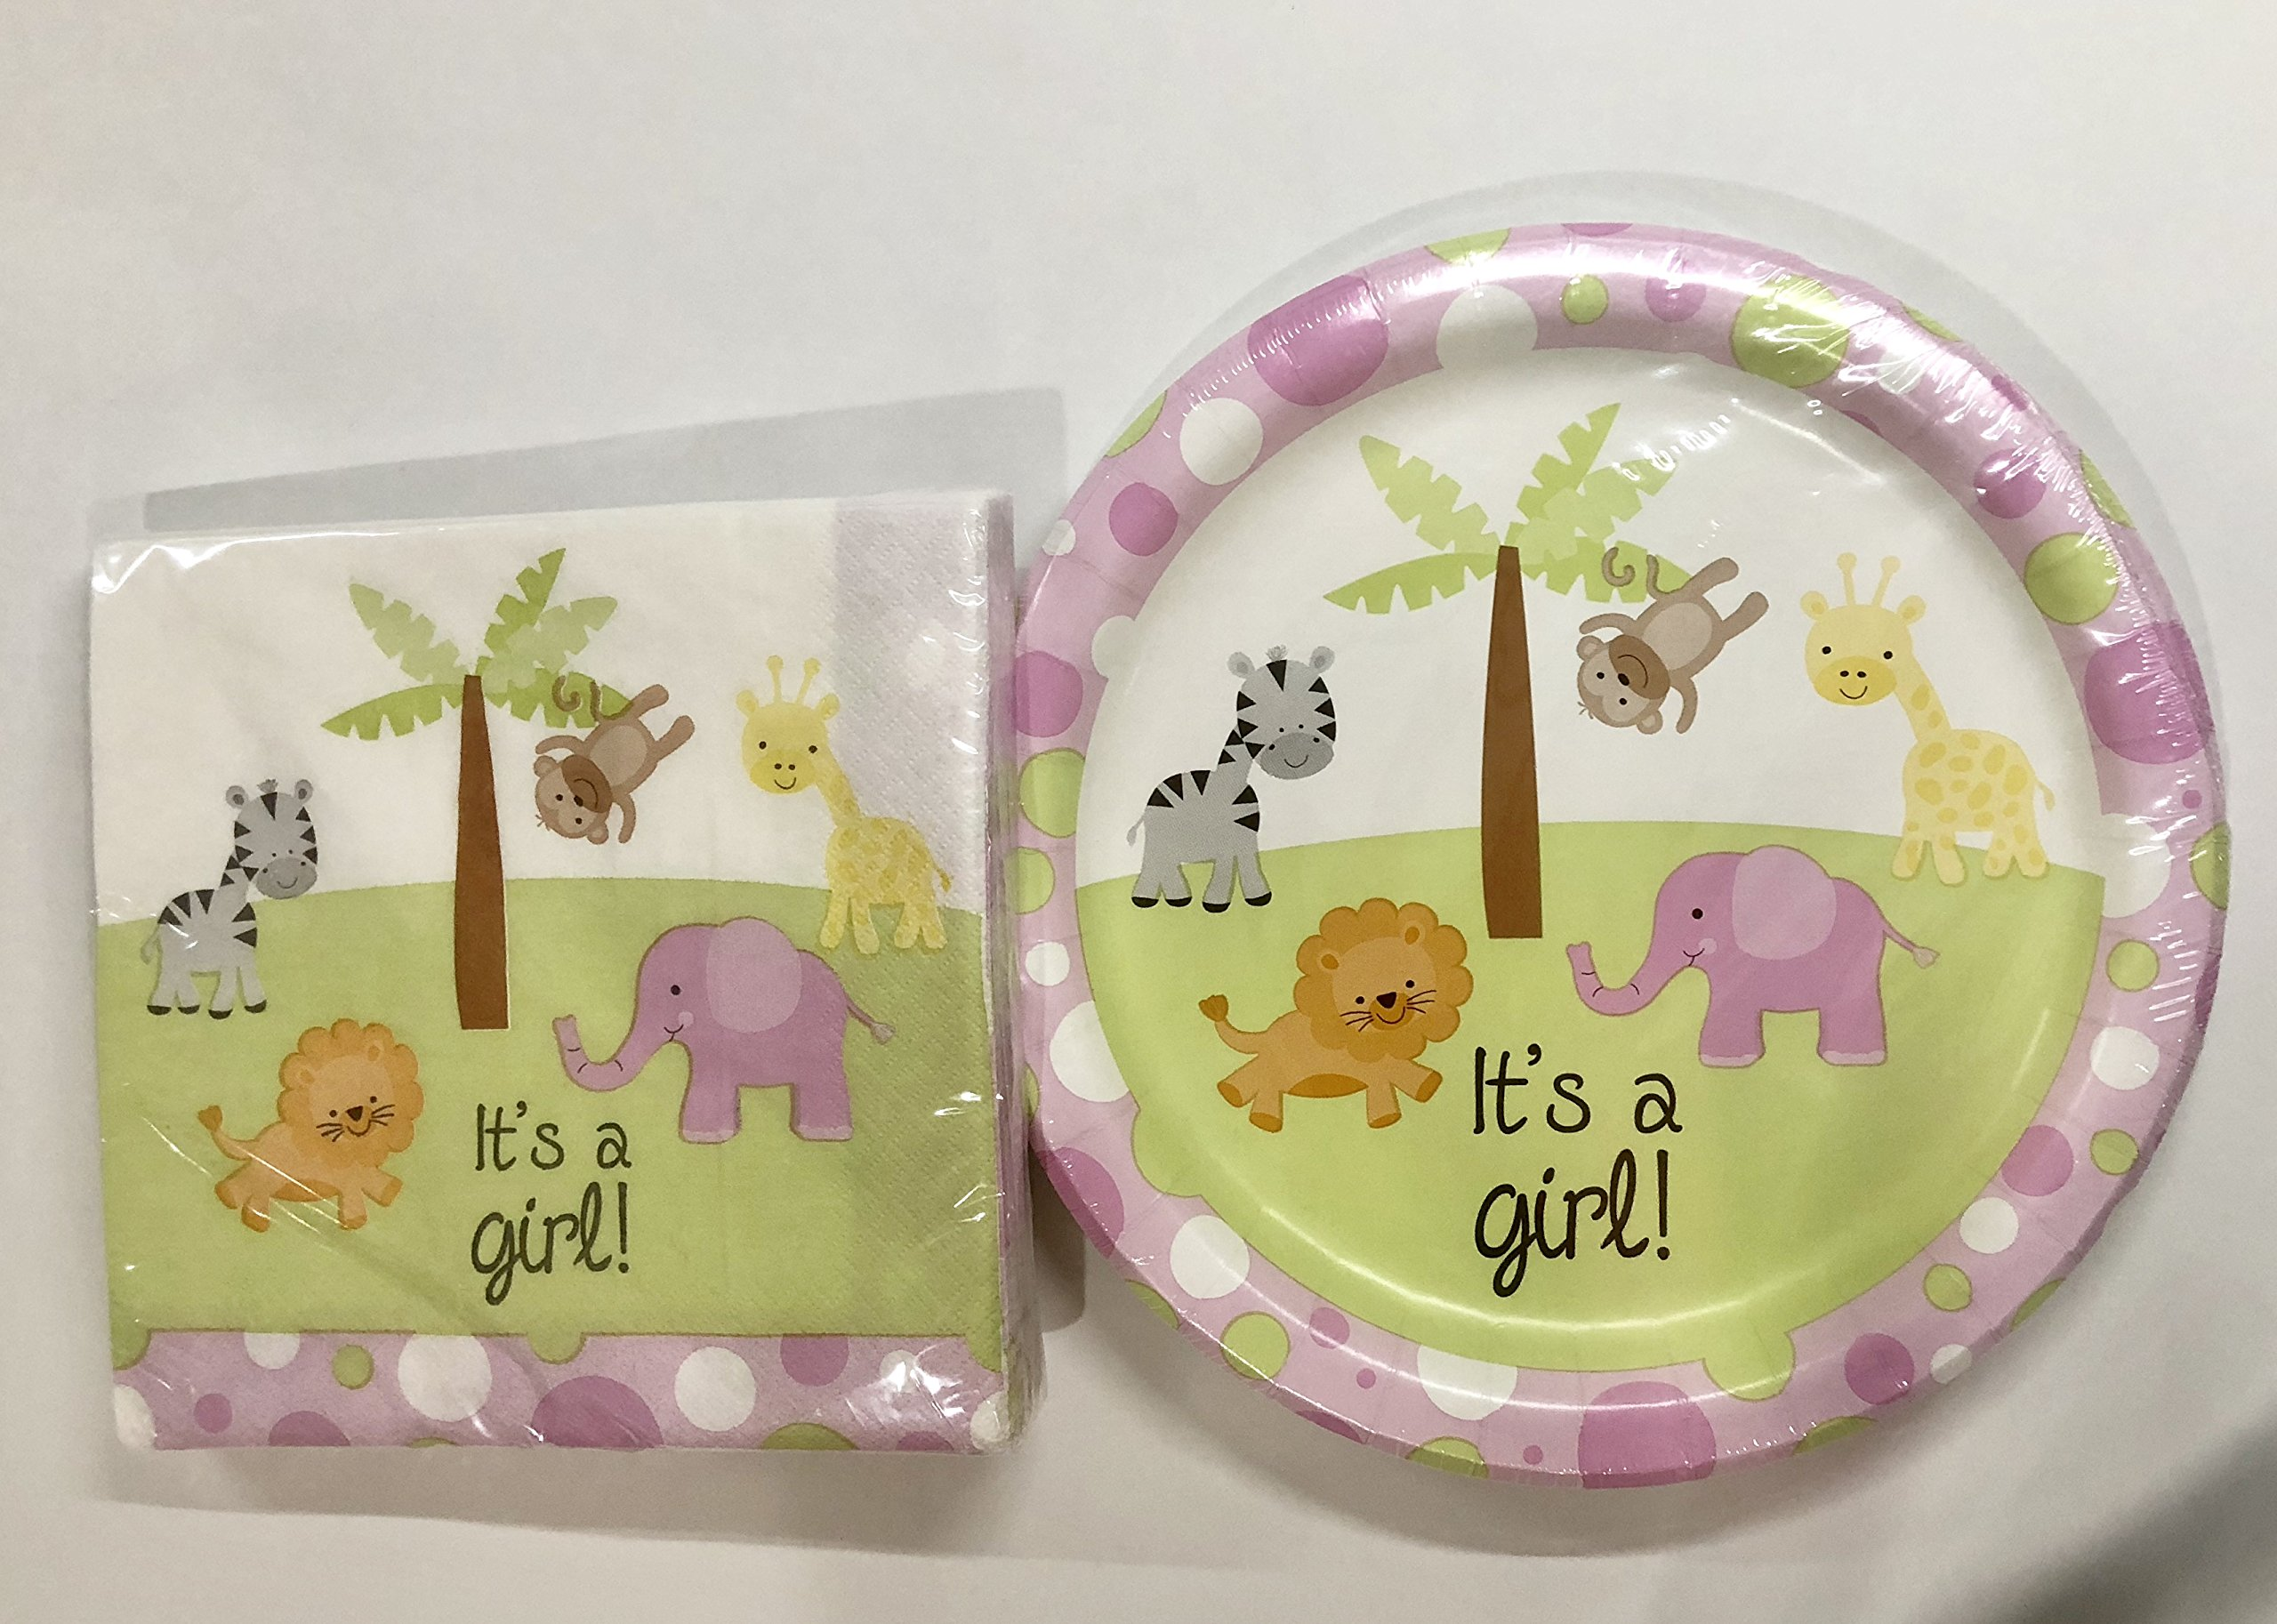 Greenbrier Baby Shower Plates and Napkins - 18CT - It's a Girl